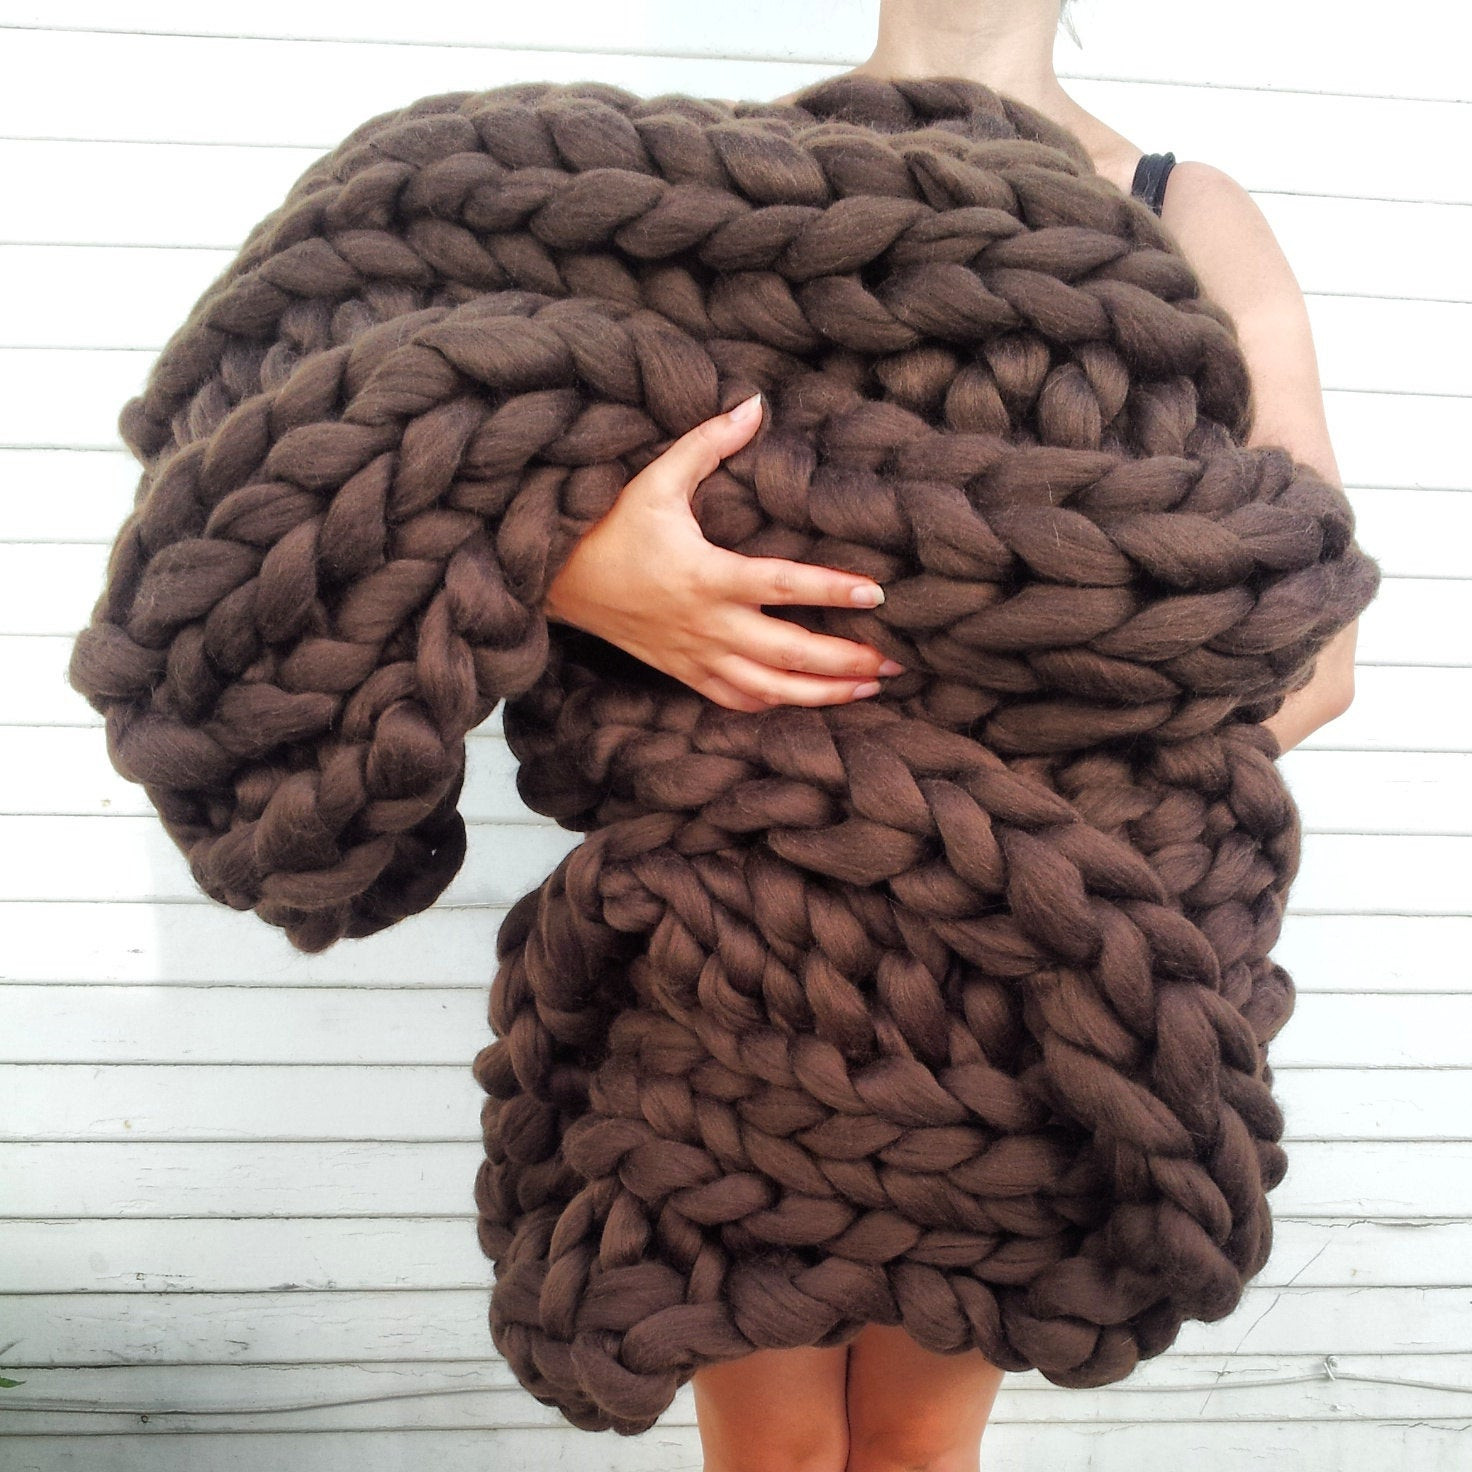 Chunky Wool Blanket Lovely Super Chunky Knit Merino Blanket 40 X 58 Deep Brown Chunky Of Incredible 43 Pictures Chunky Wool Blanket